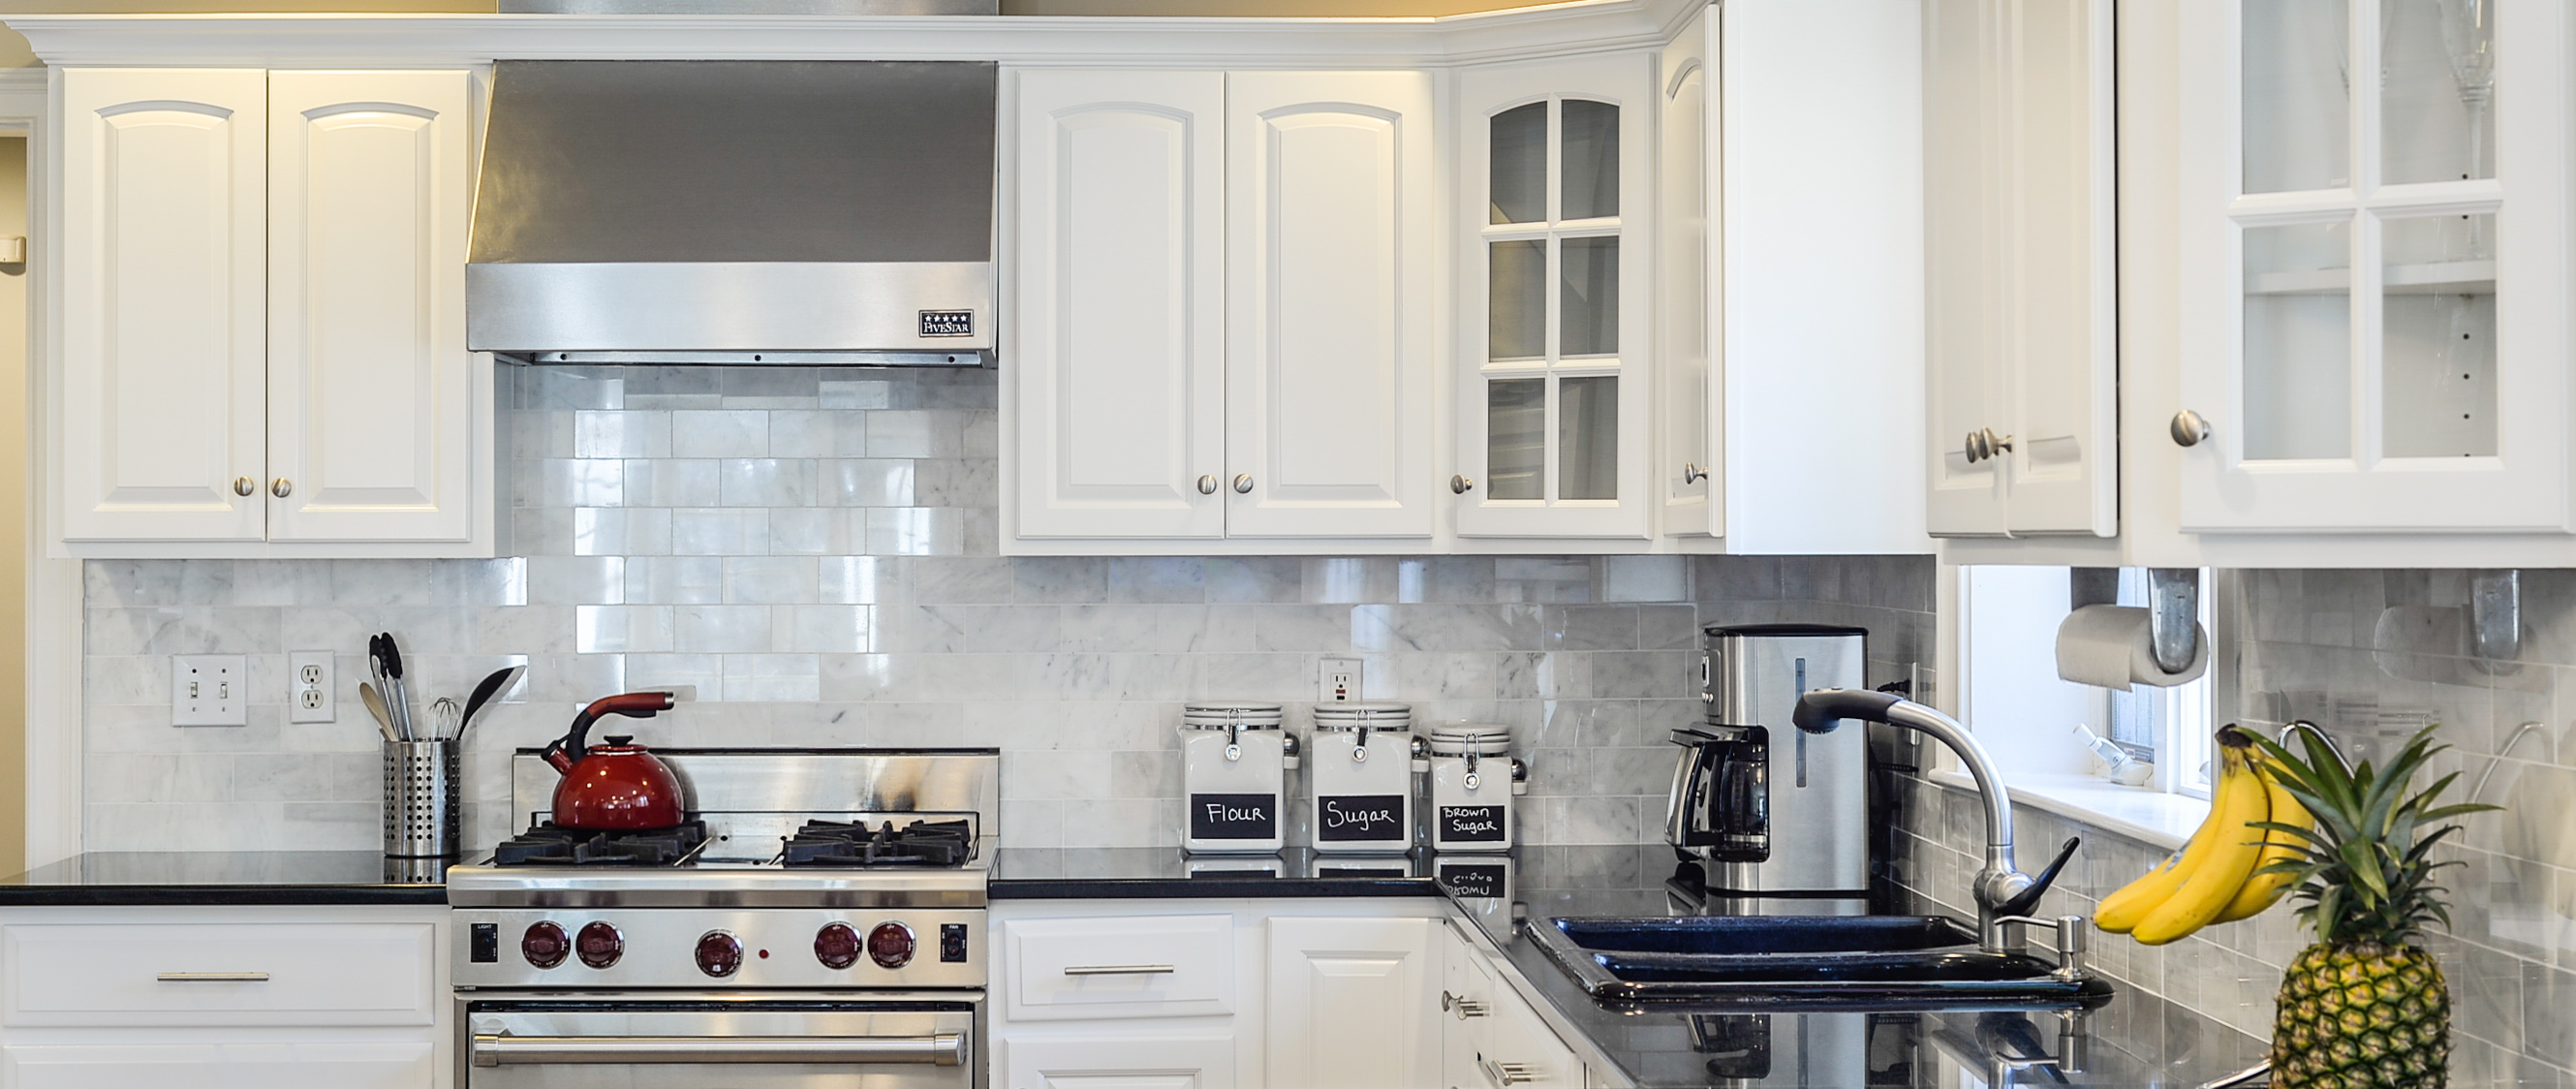 Alpha Painting Kitchen Cabinets Andover Boxford Georgetown Topsfield North Andover